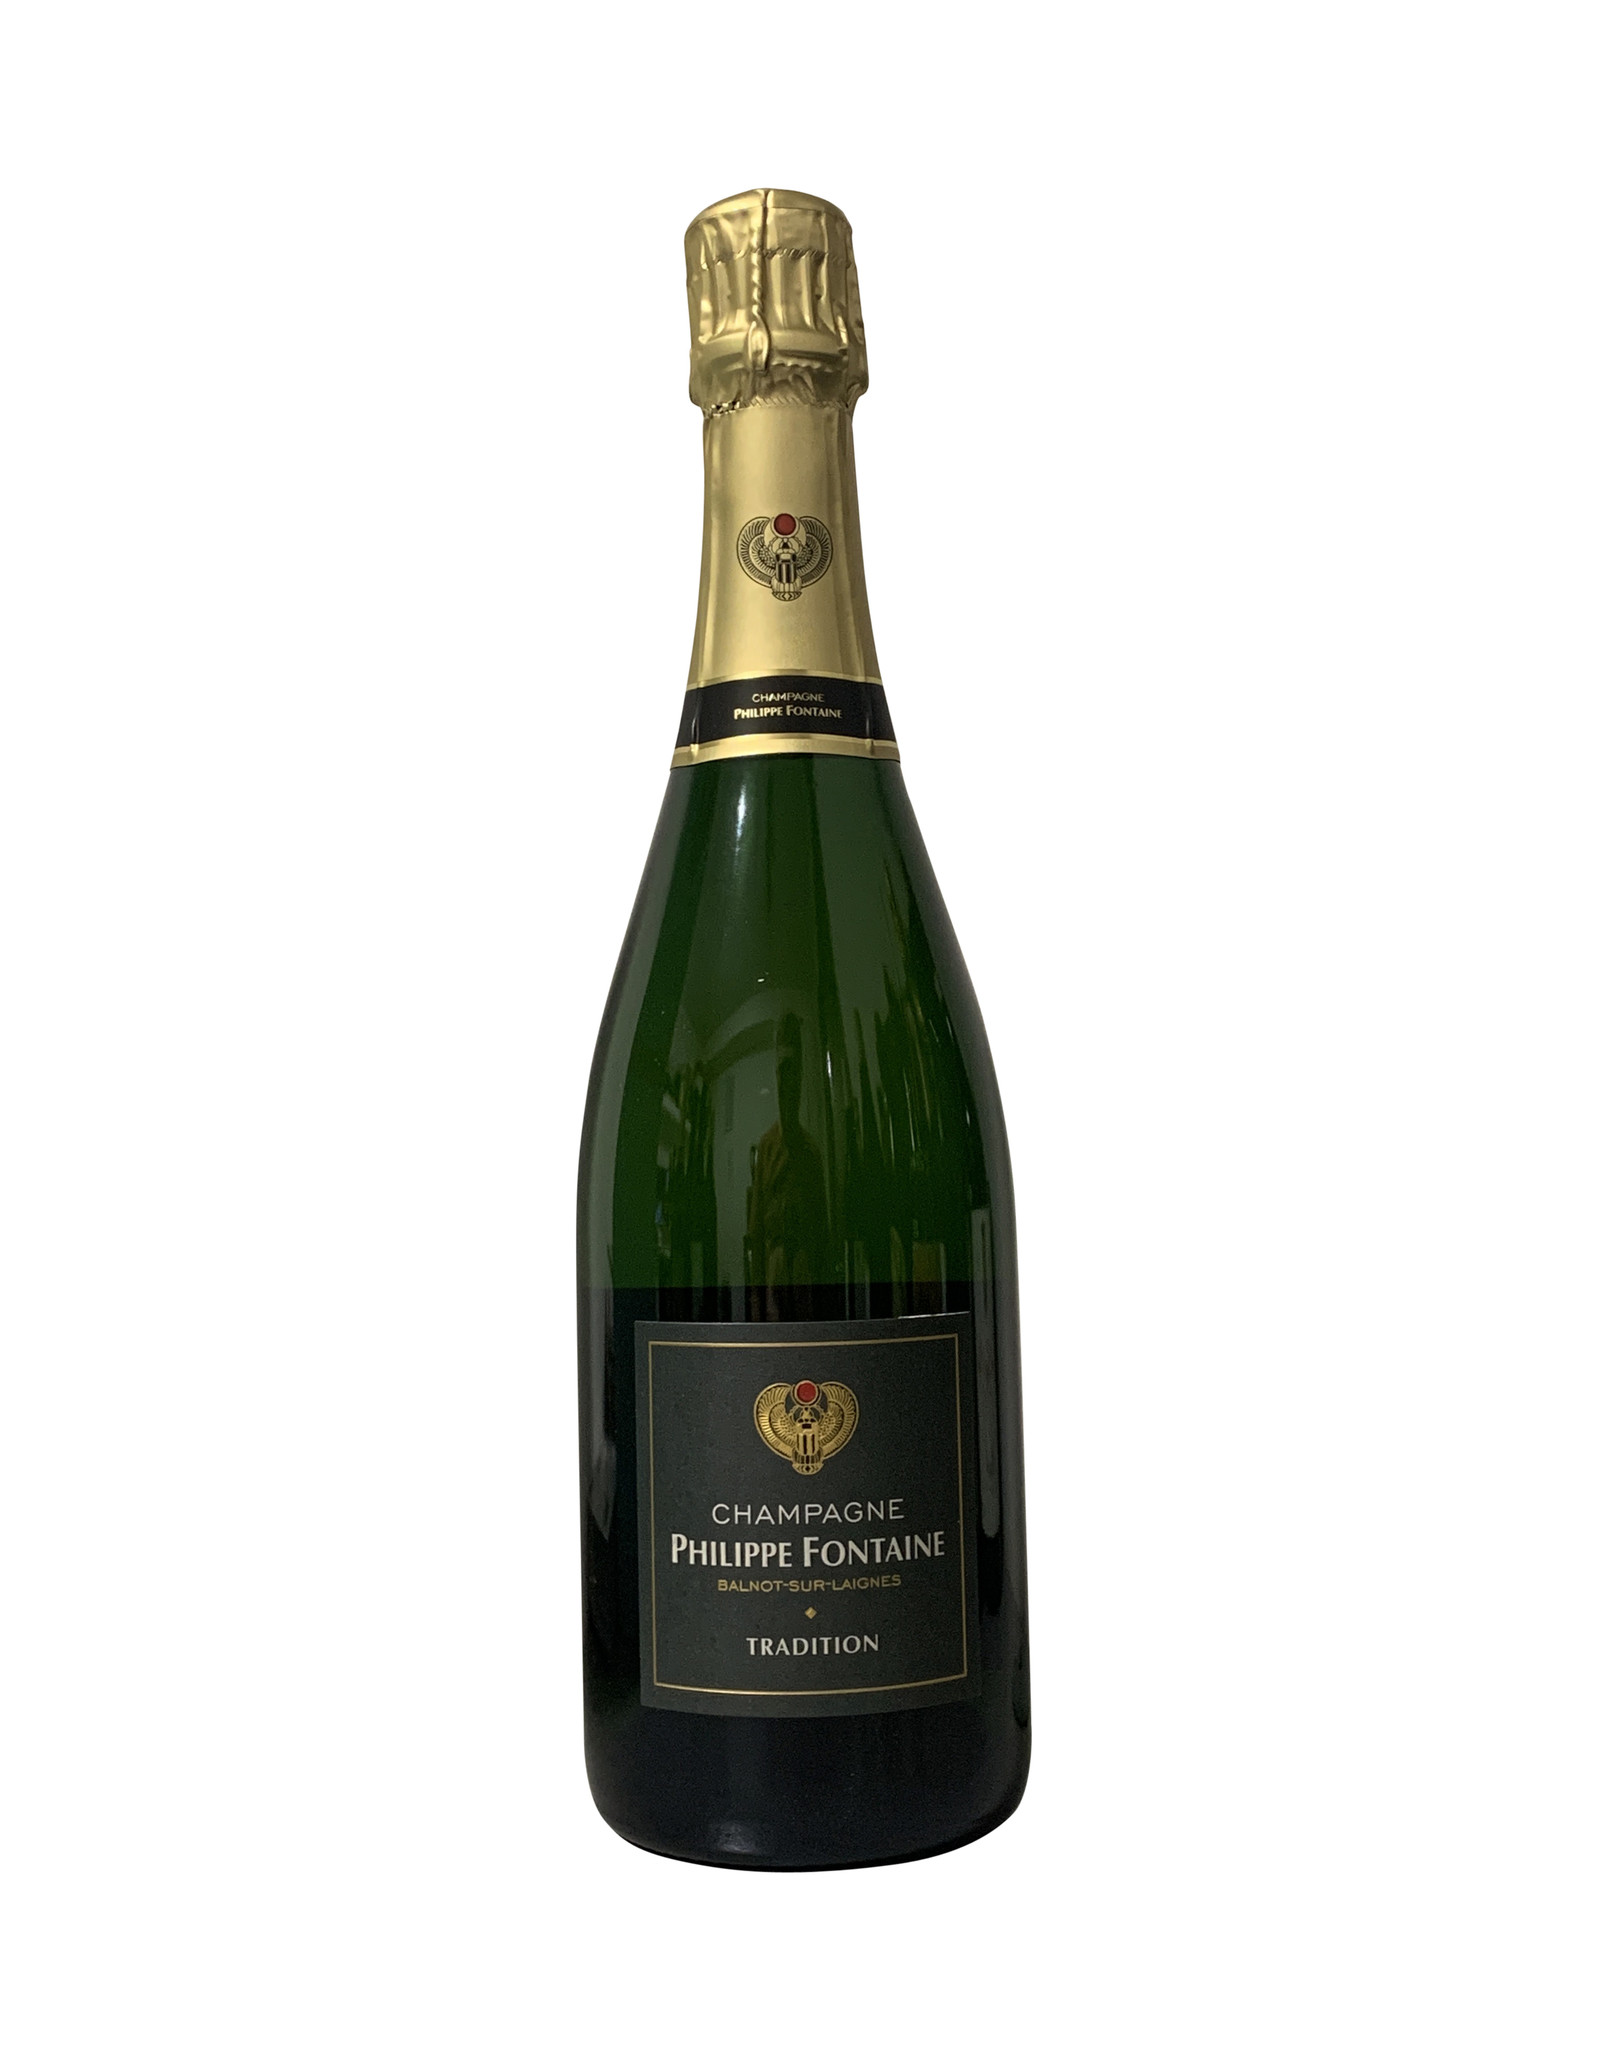 """Philippe Fontaine Philippe Fontaine Champagne """"Tradition"""" Brut, Champagne, France (750mL)"""